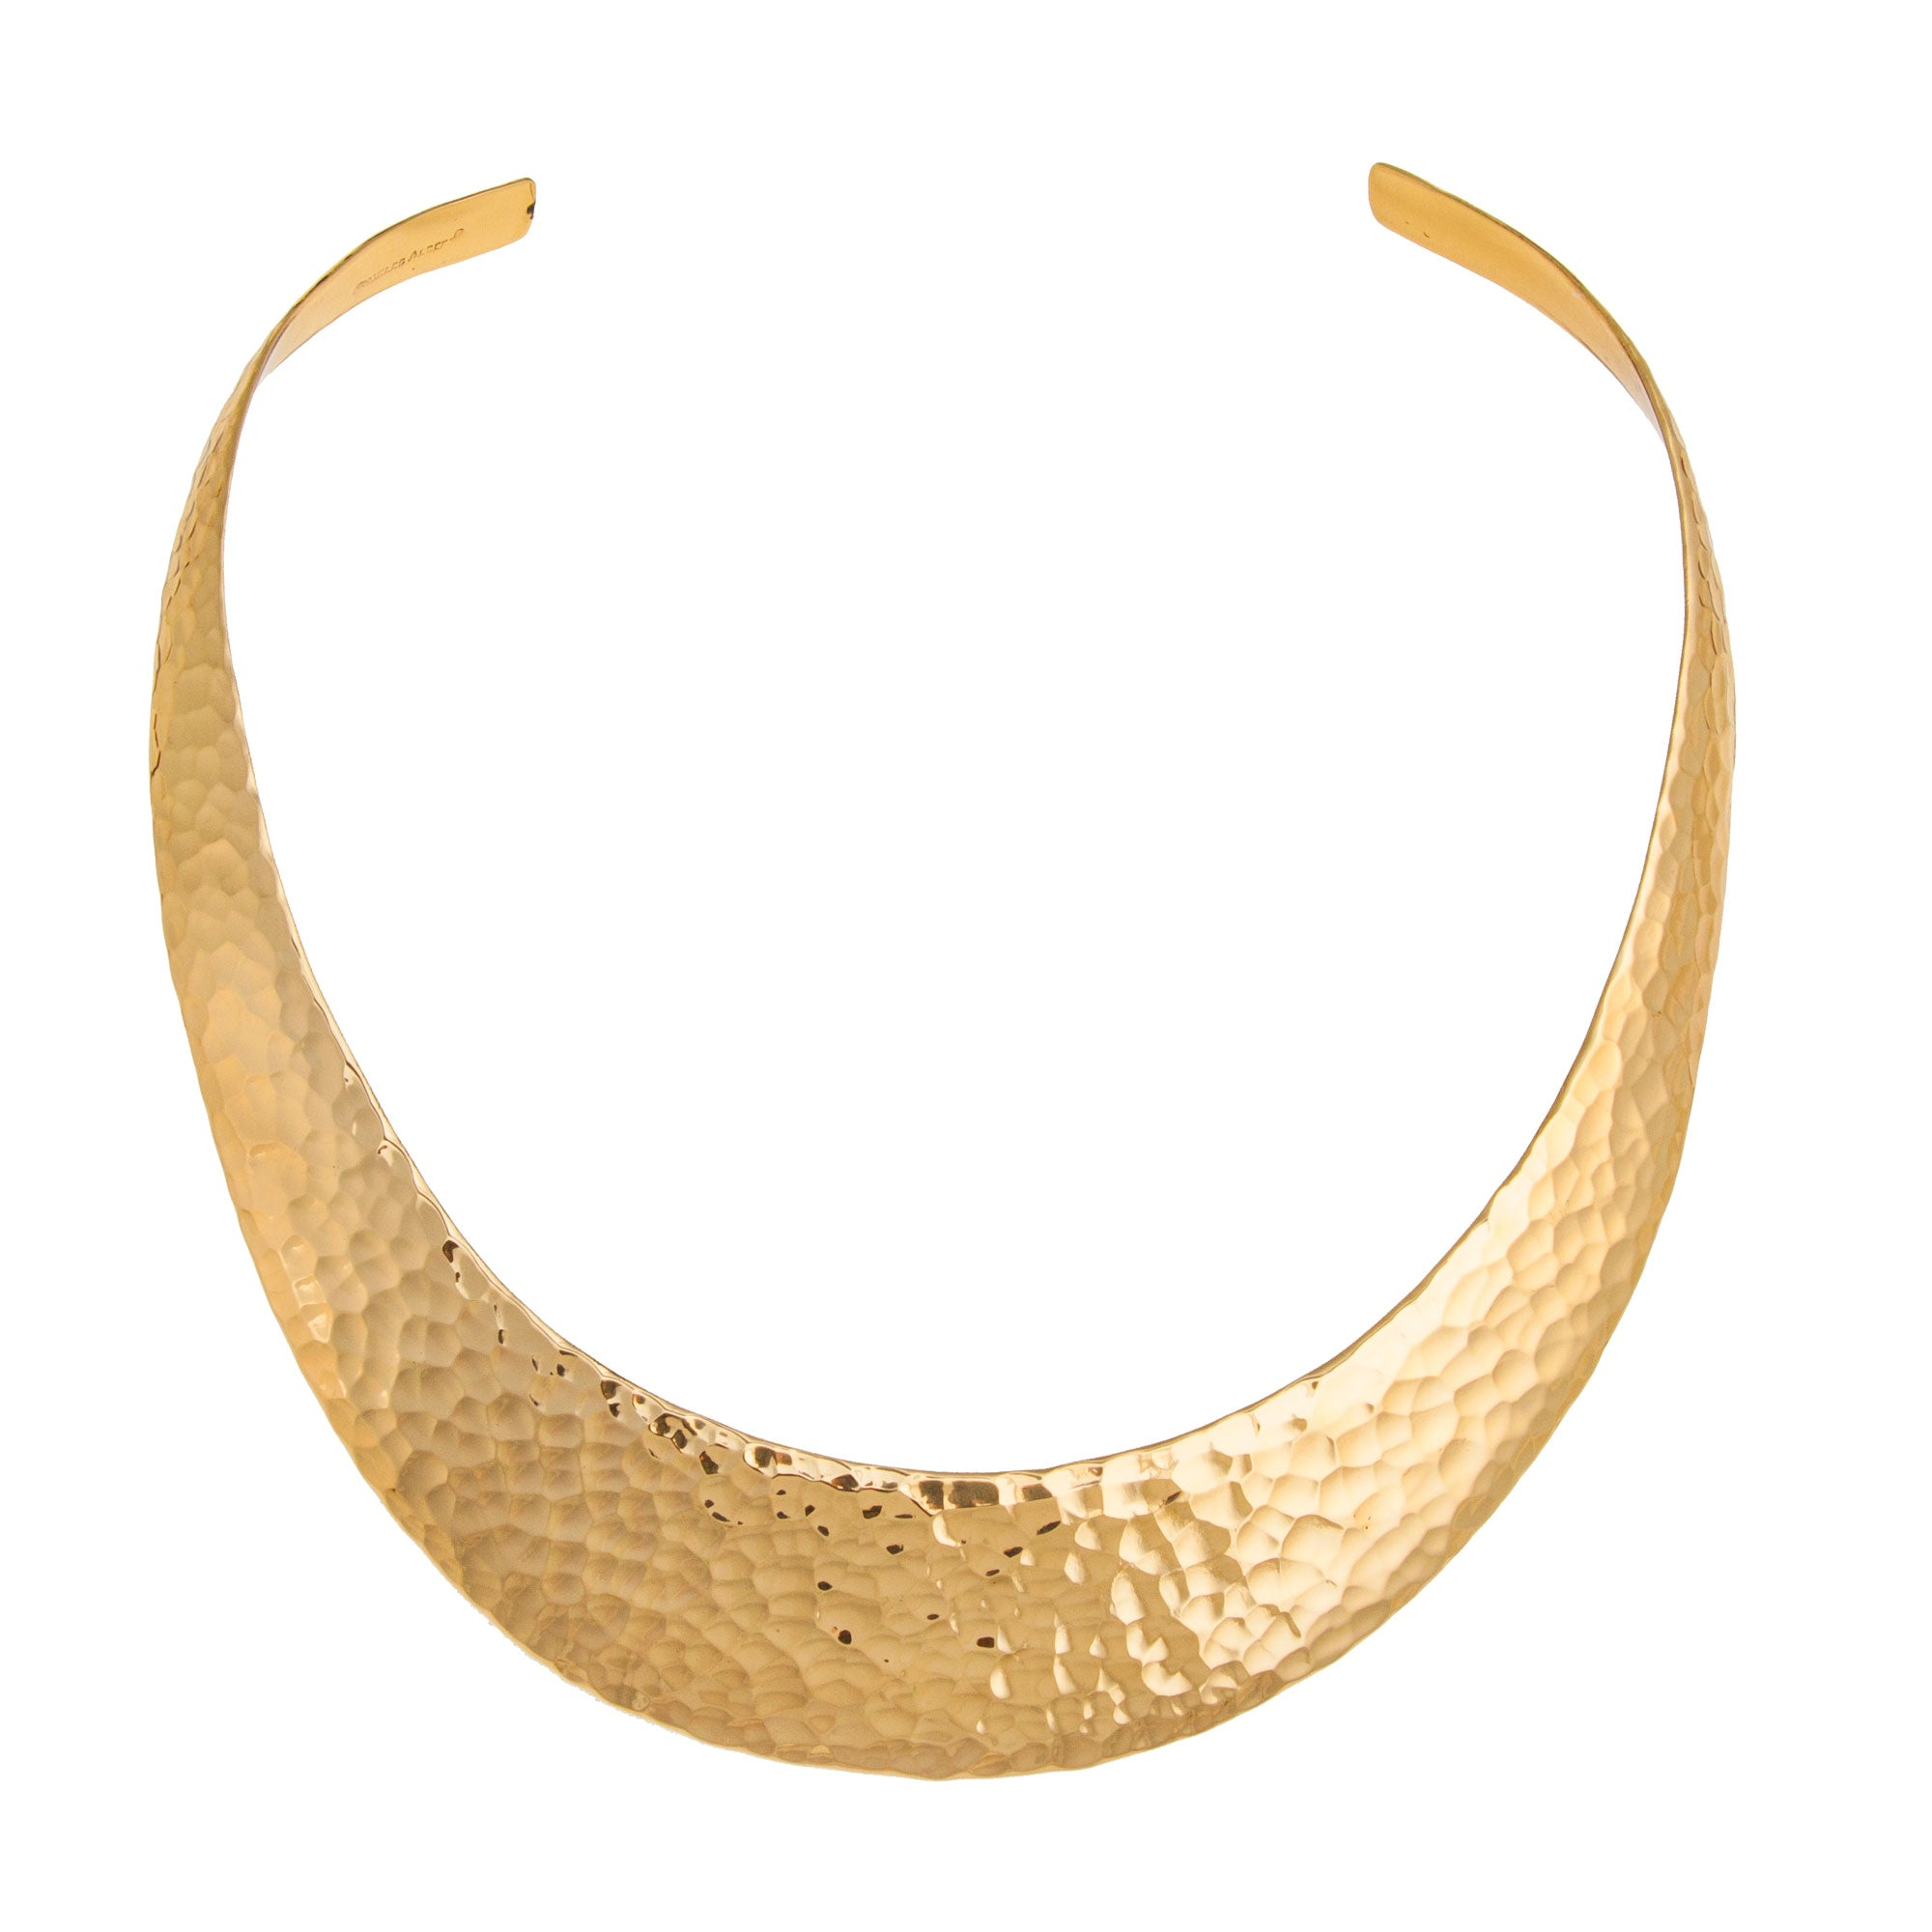 Alchemia Hammered Graduated Collar - 9H | Charles Albert Jewelry